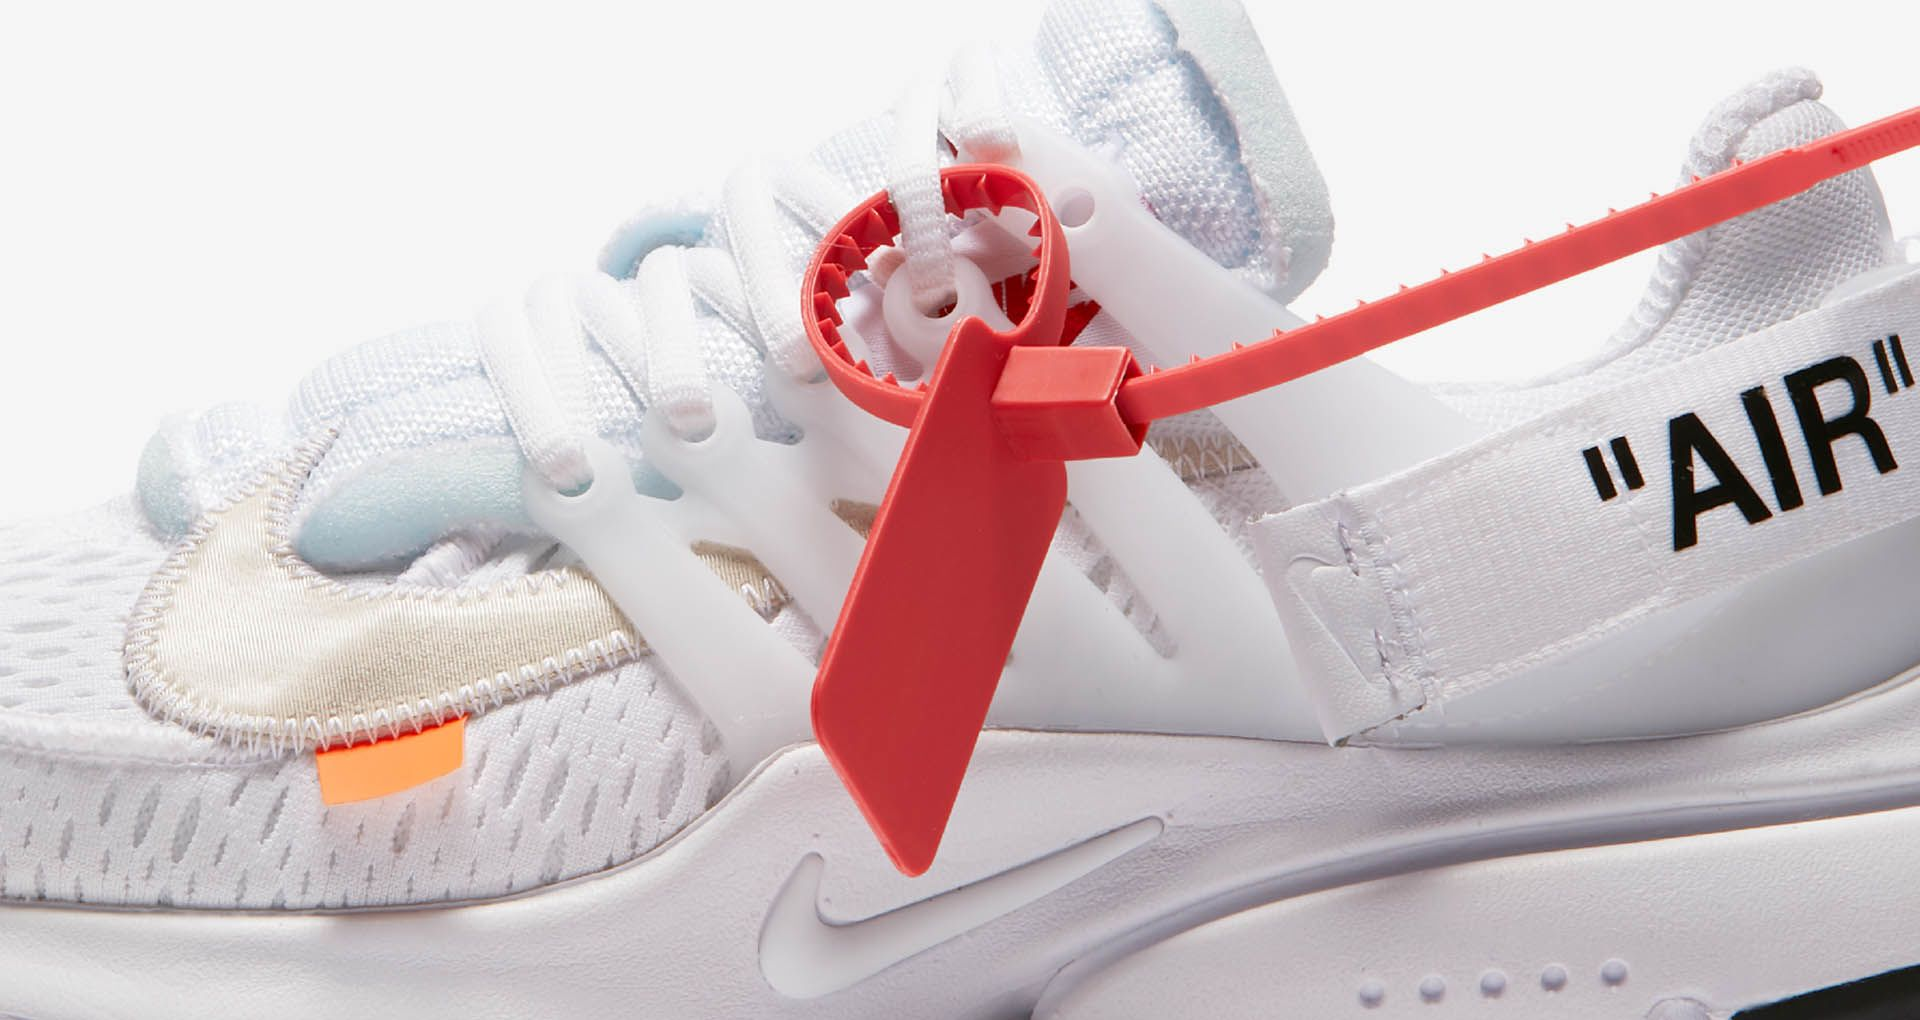 off-white-virgil-abloh-nike-air-presto-aa3830-100-release-20180803